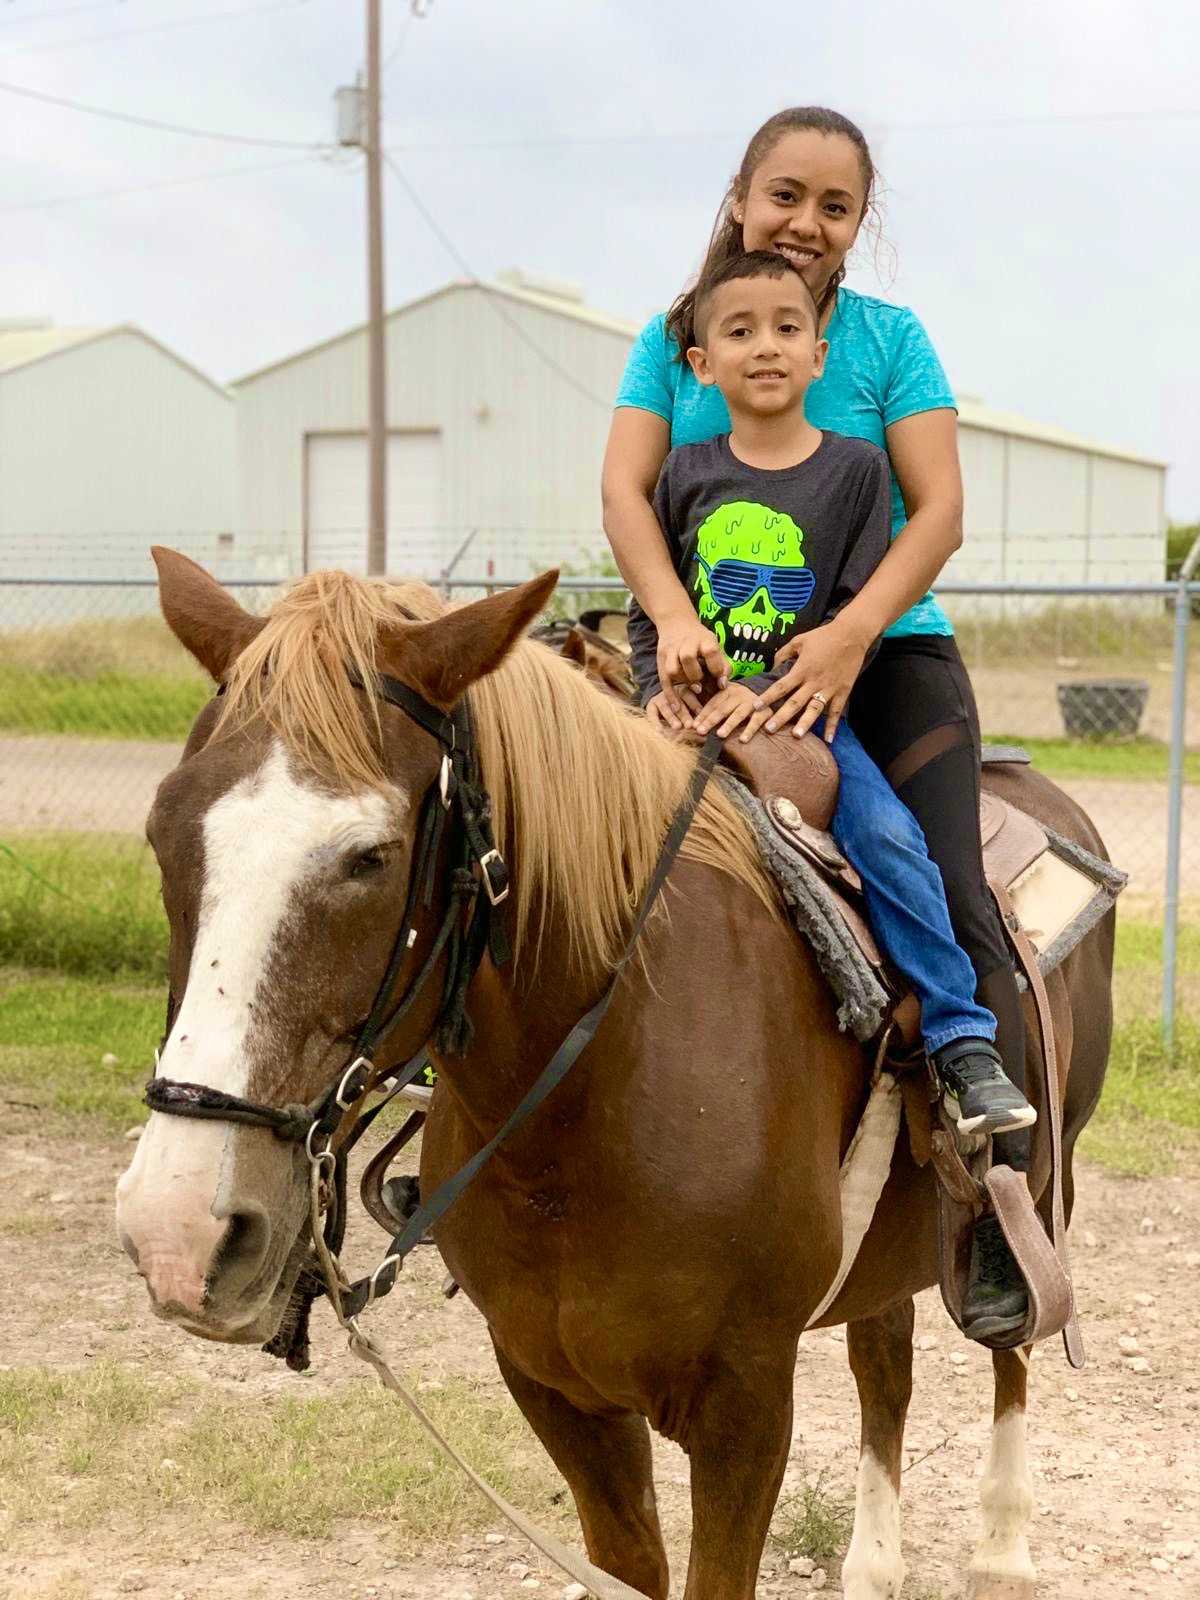 Mom and Son on a Horse